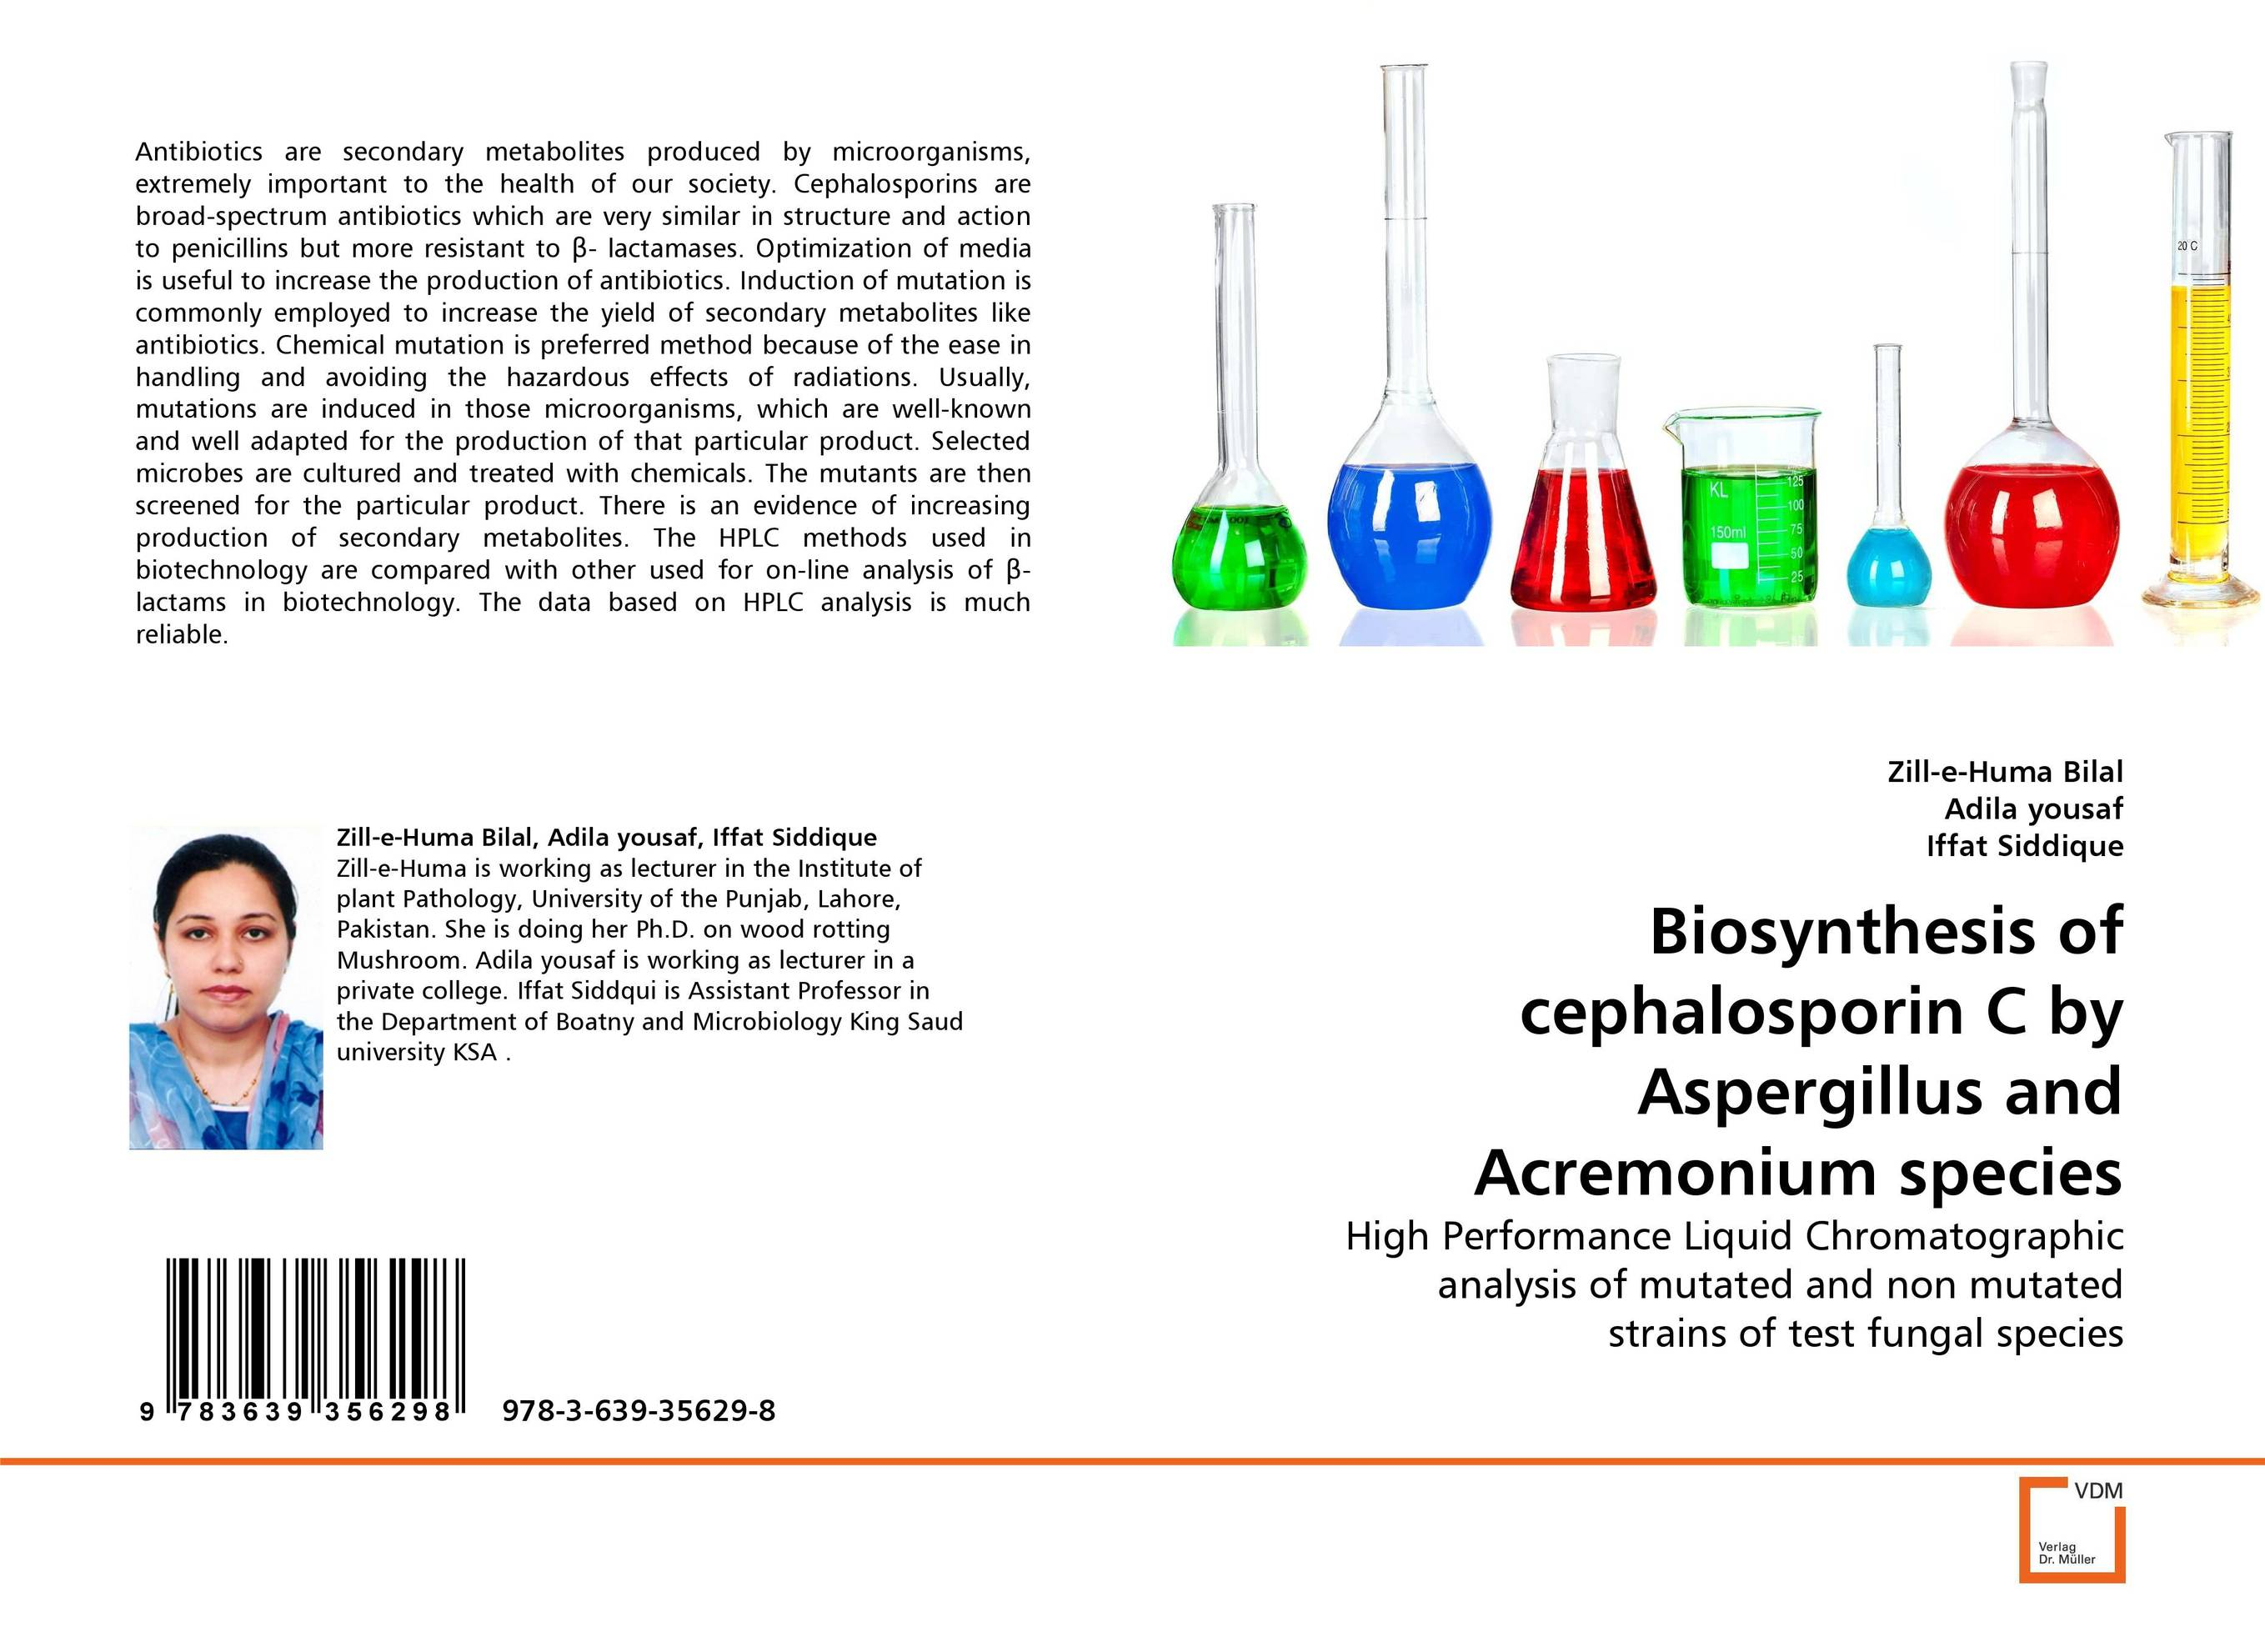 Biosynthesis of cephalosporin C by Aspergillus and Acremonium species production of cellulases by aspergillus niger